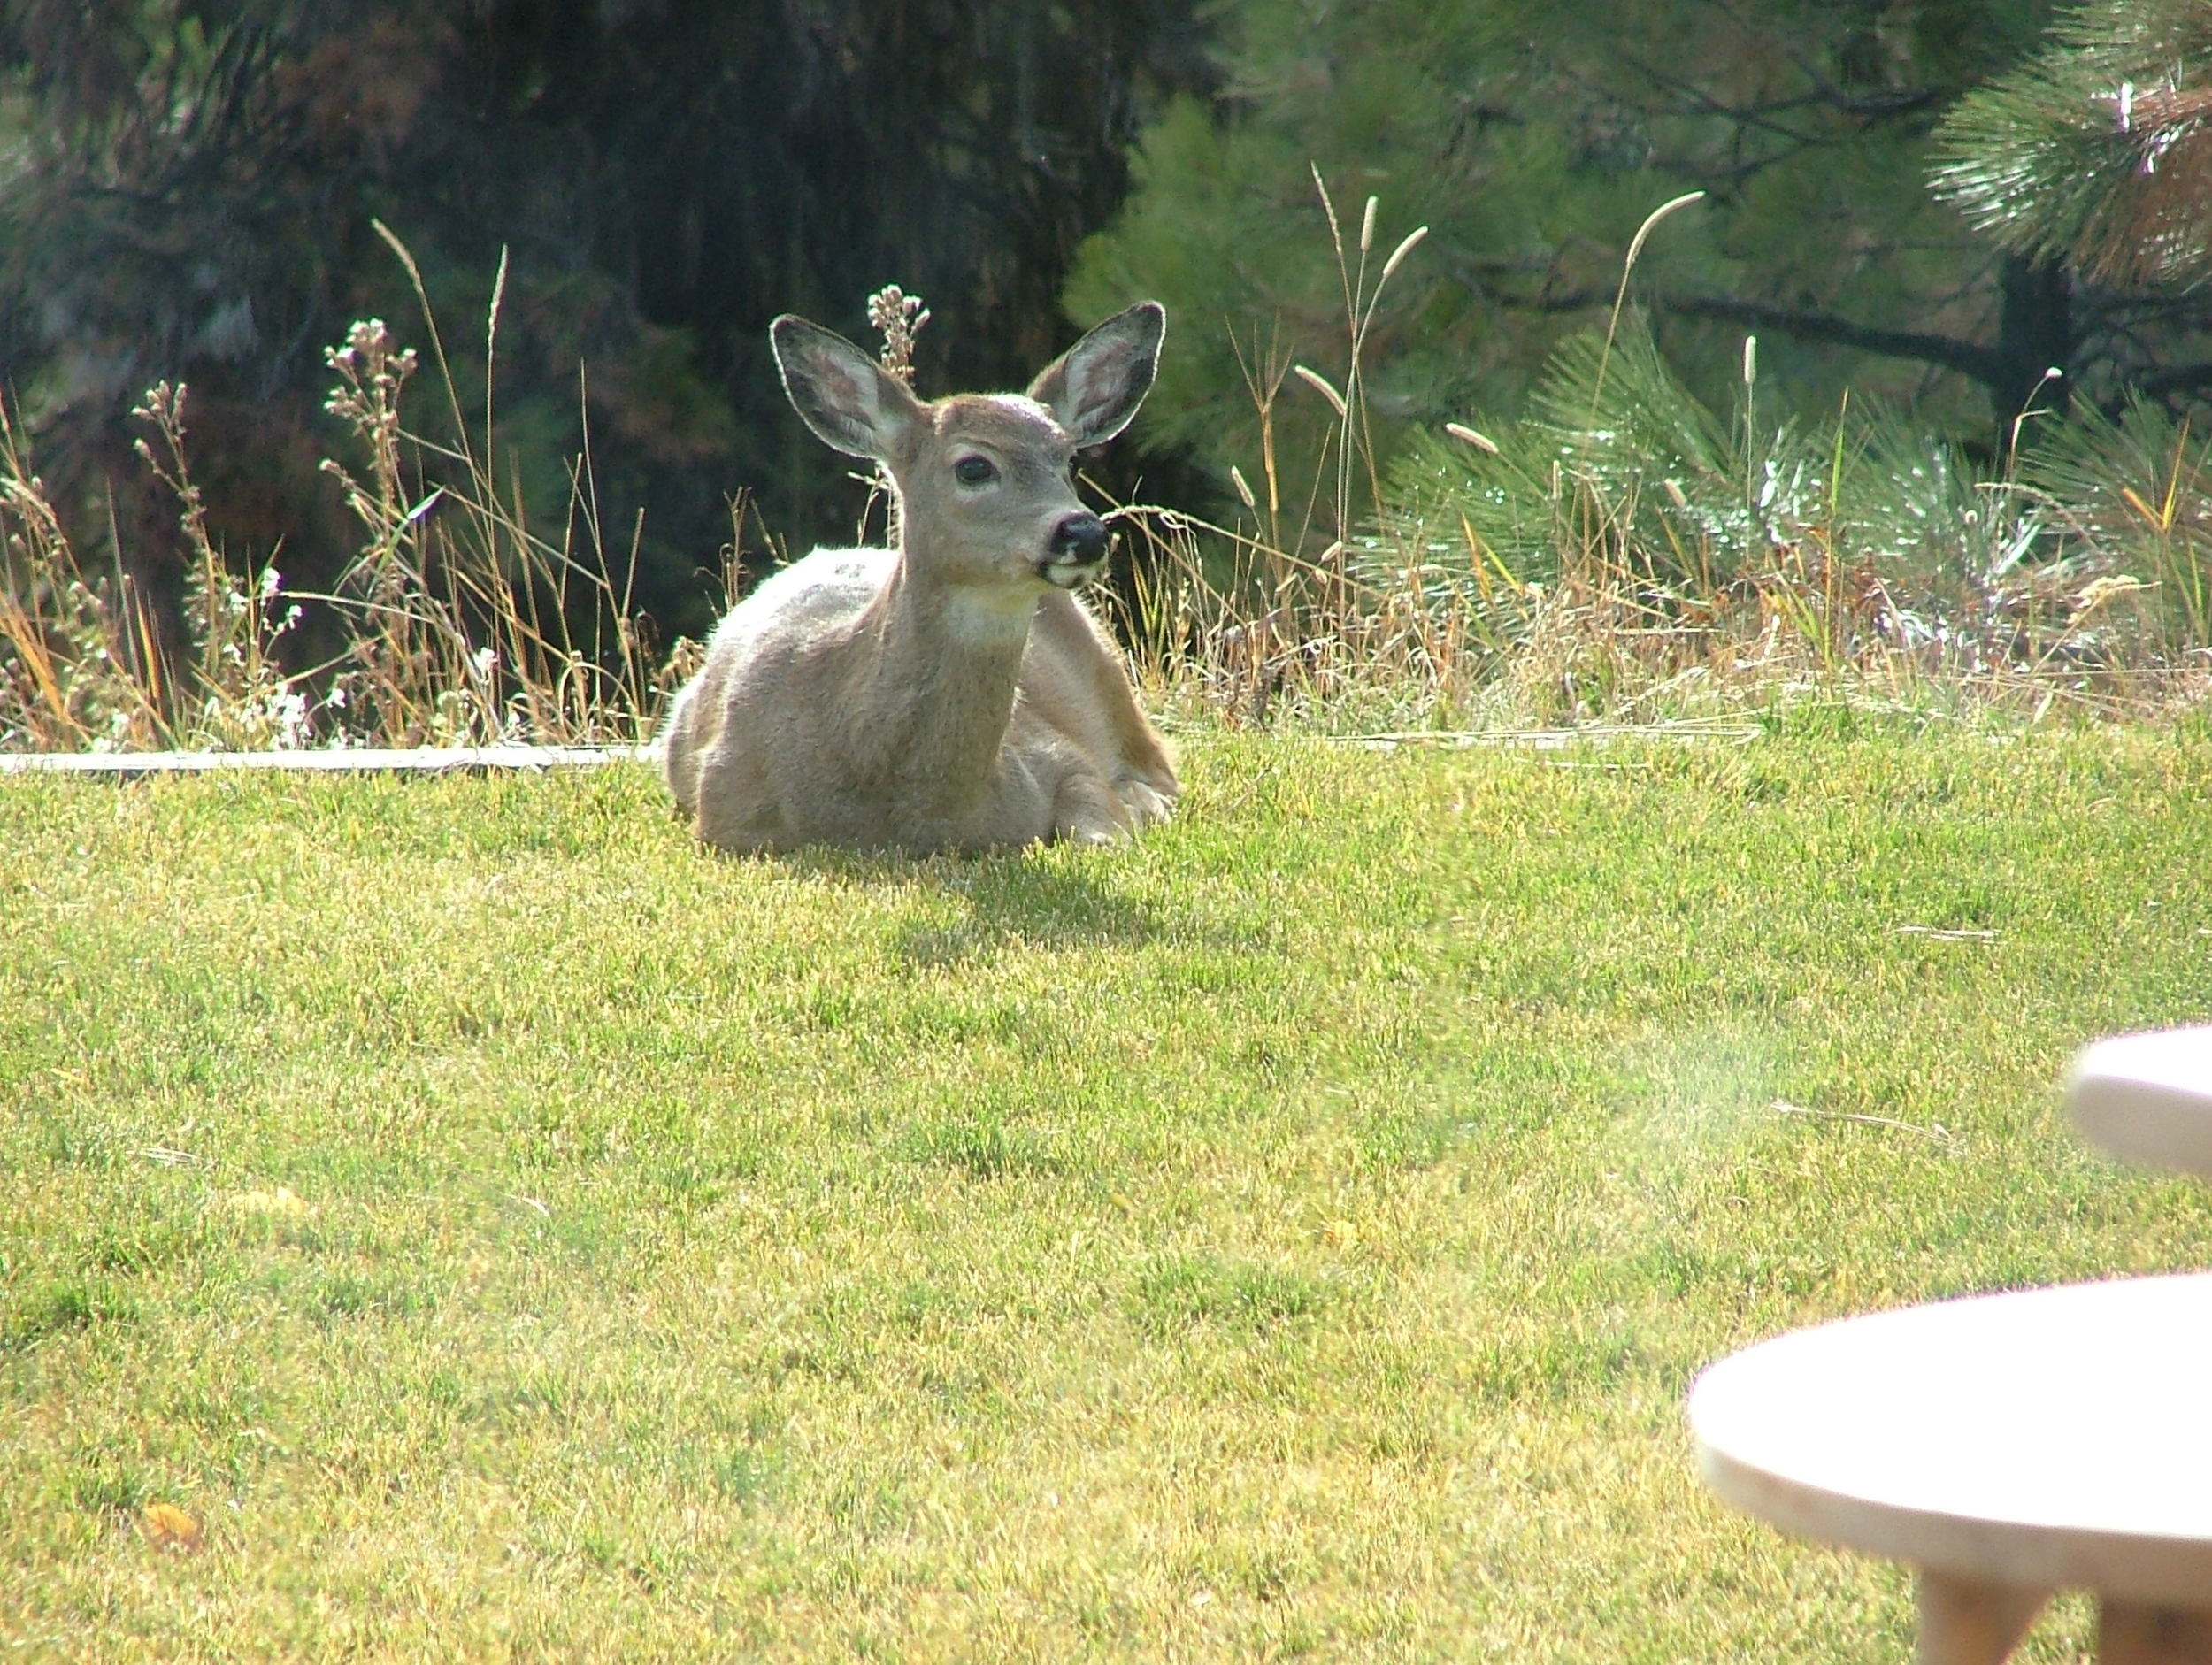 The deer feel quite at home in our yard.